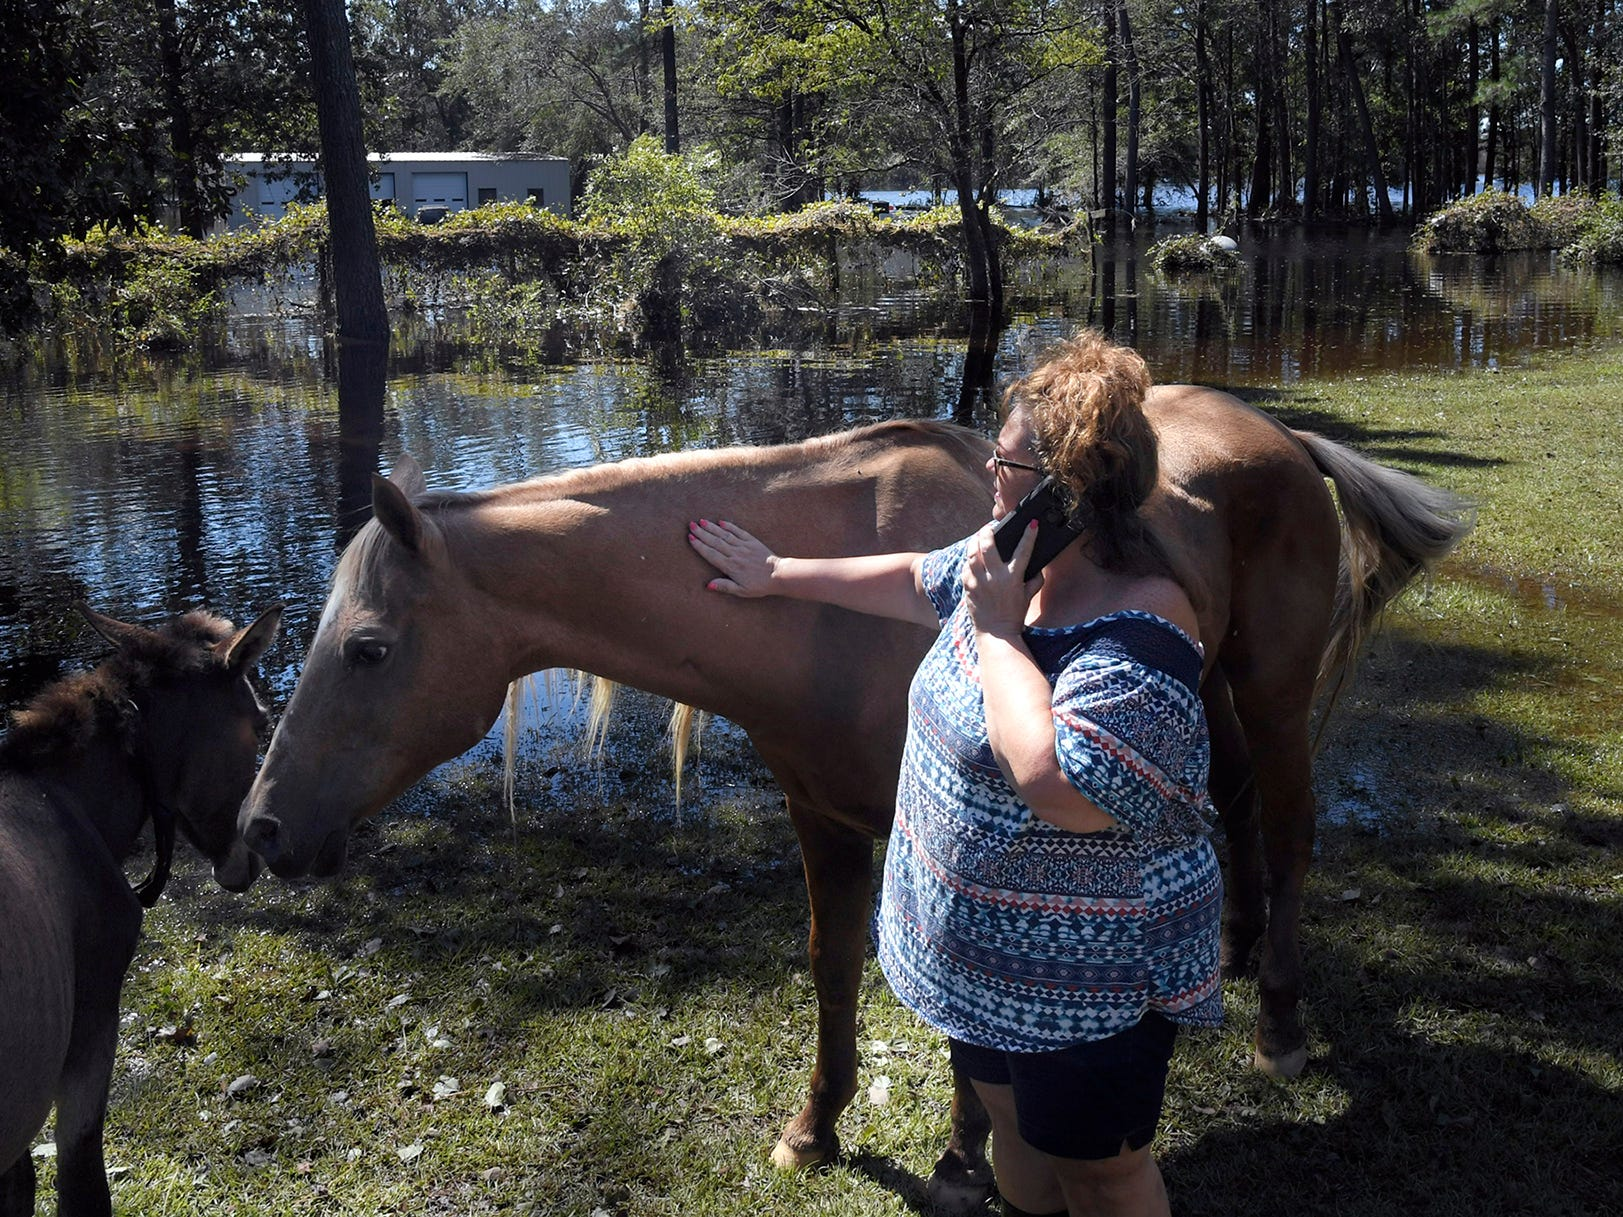 Wendy Rhodes pets her horse and donkey in her flooded backyard at Hallsville, NC home in Duplin County on Tuesday, Sept. 18, 2018.